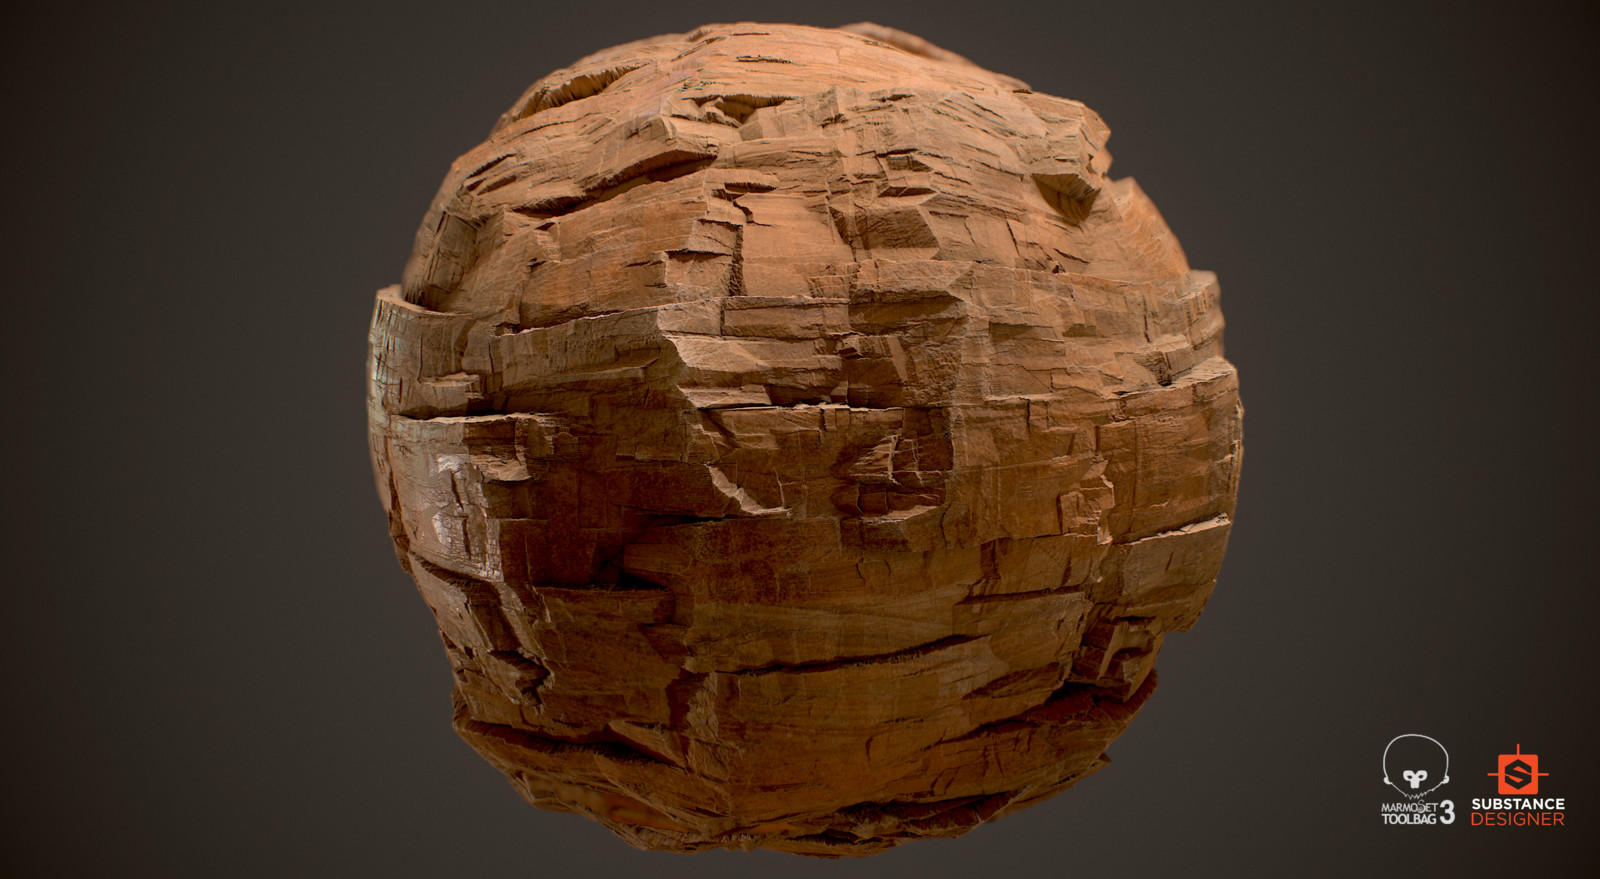 Blocky Desert Rock Substance Designer